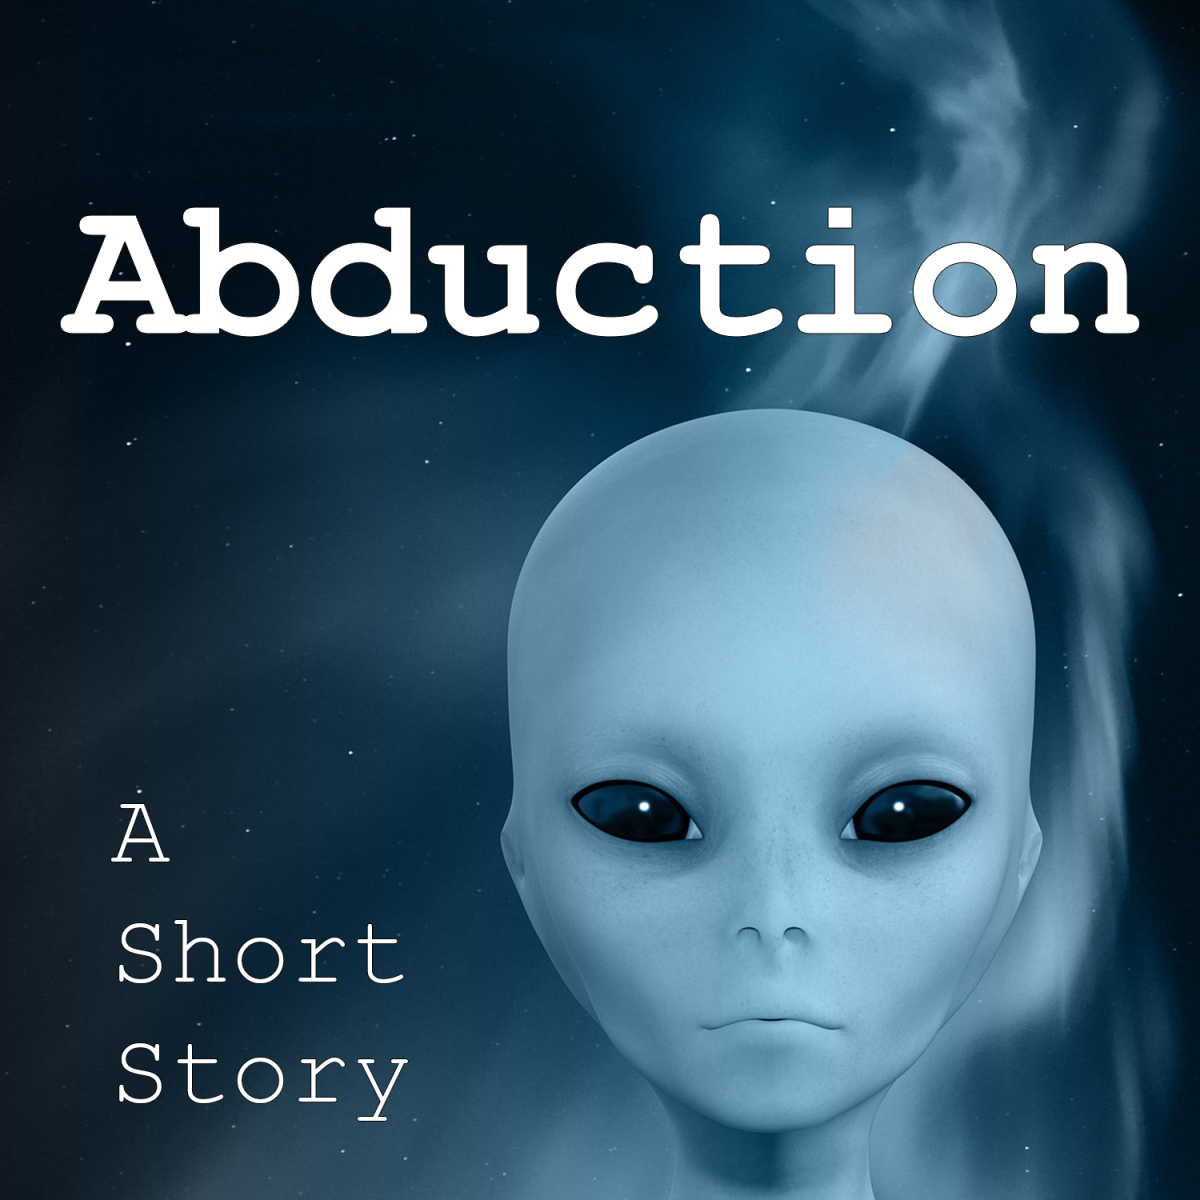 Abduction: A Short Story by Jennifer Wilber